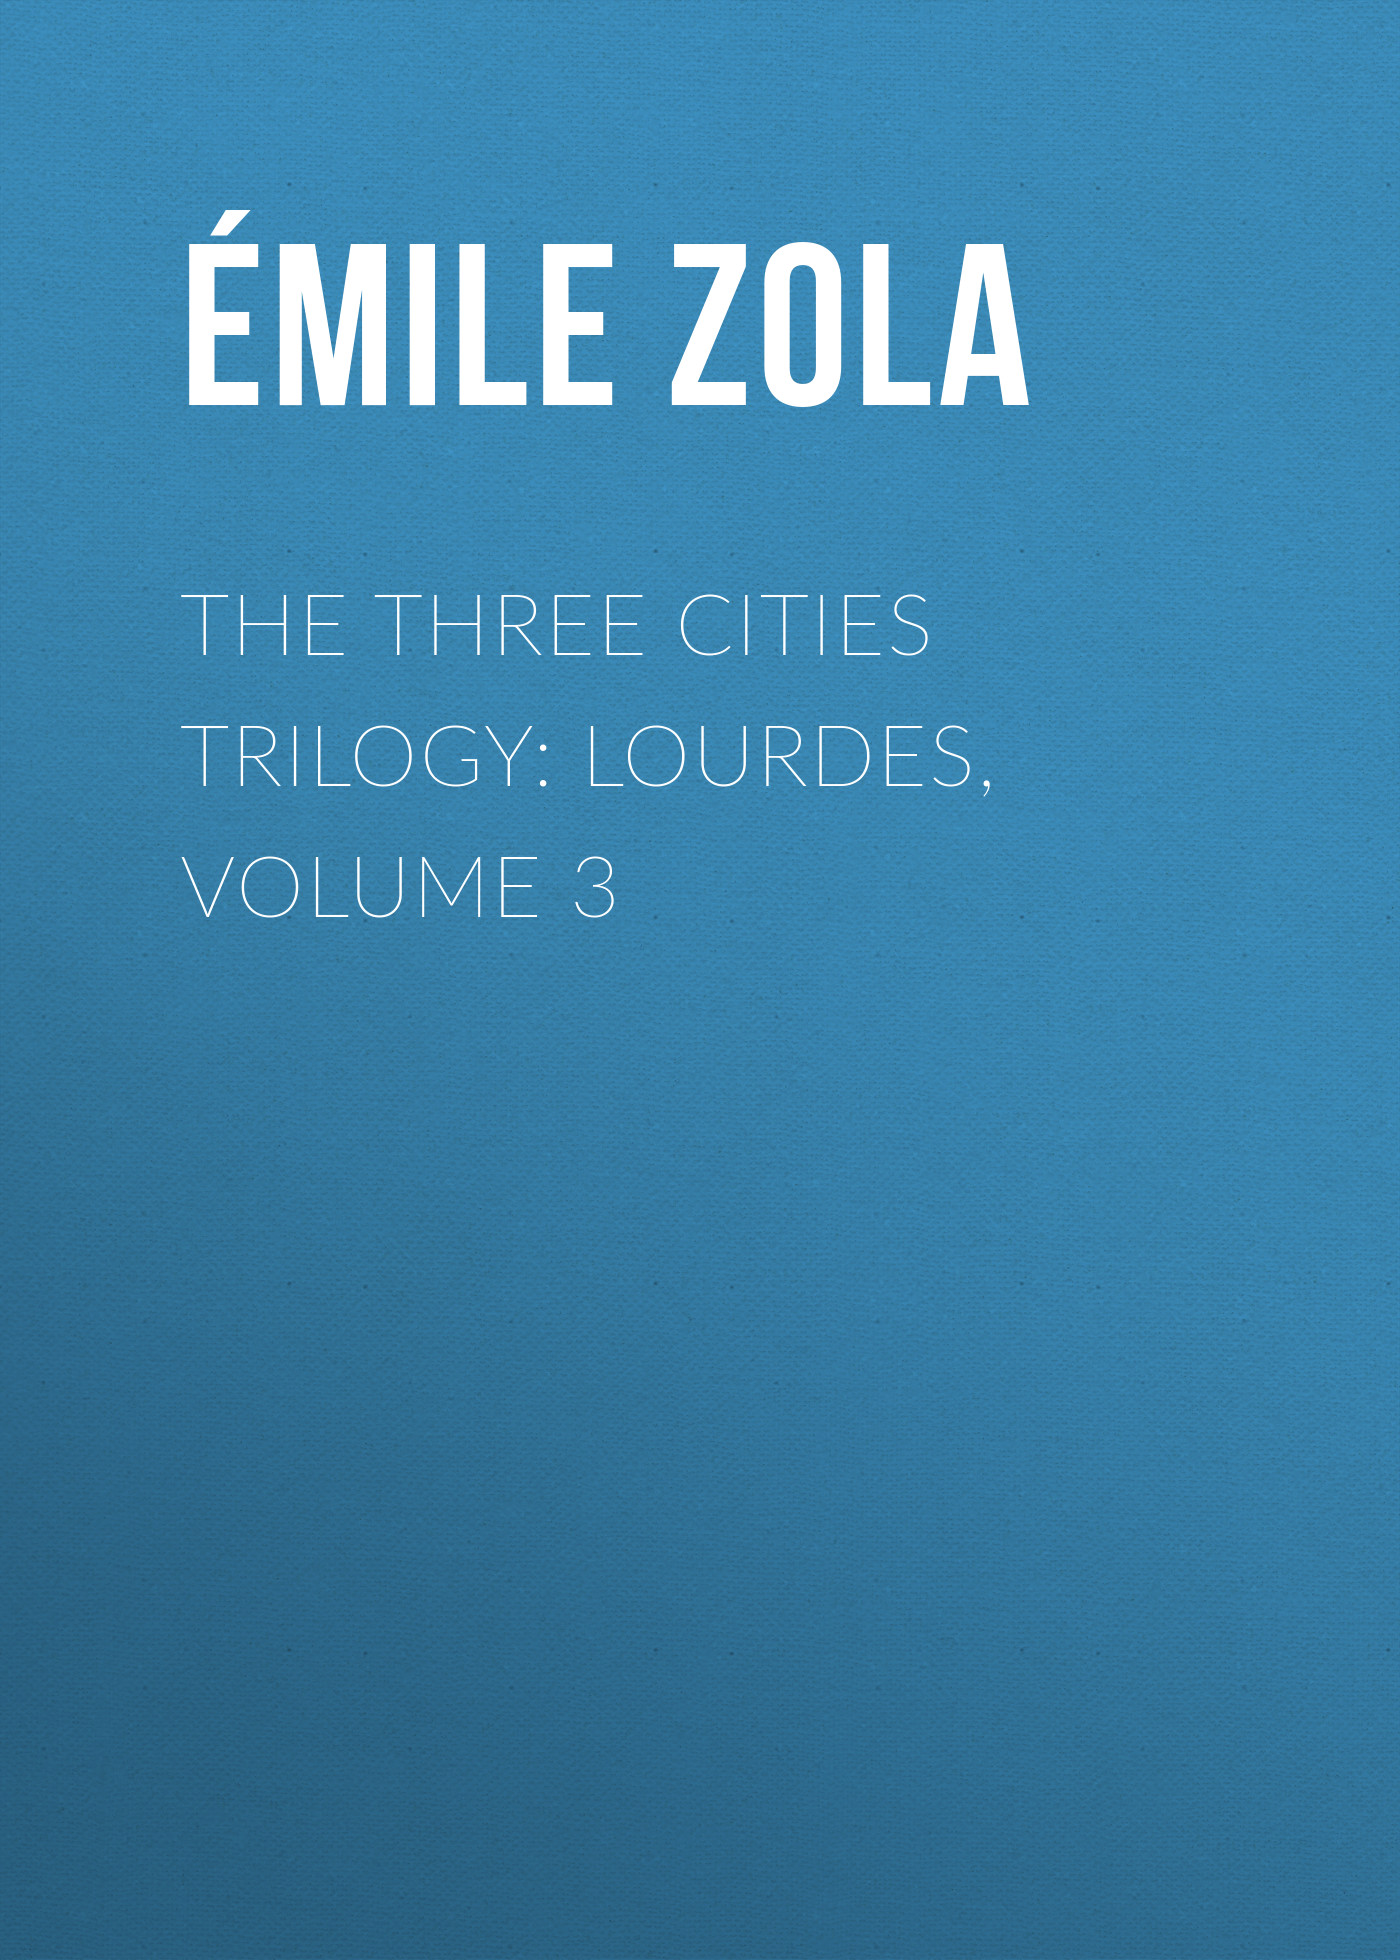 the three cities trilogy lourdes volume 3